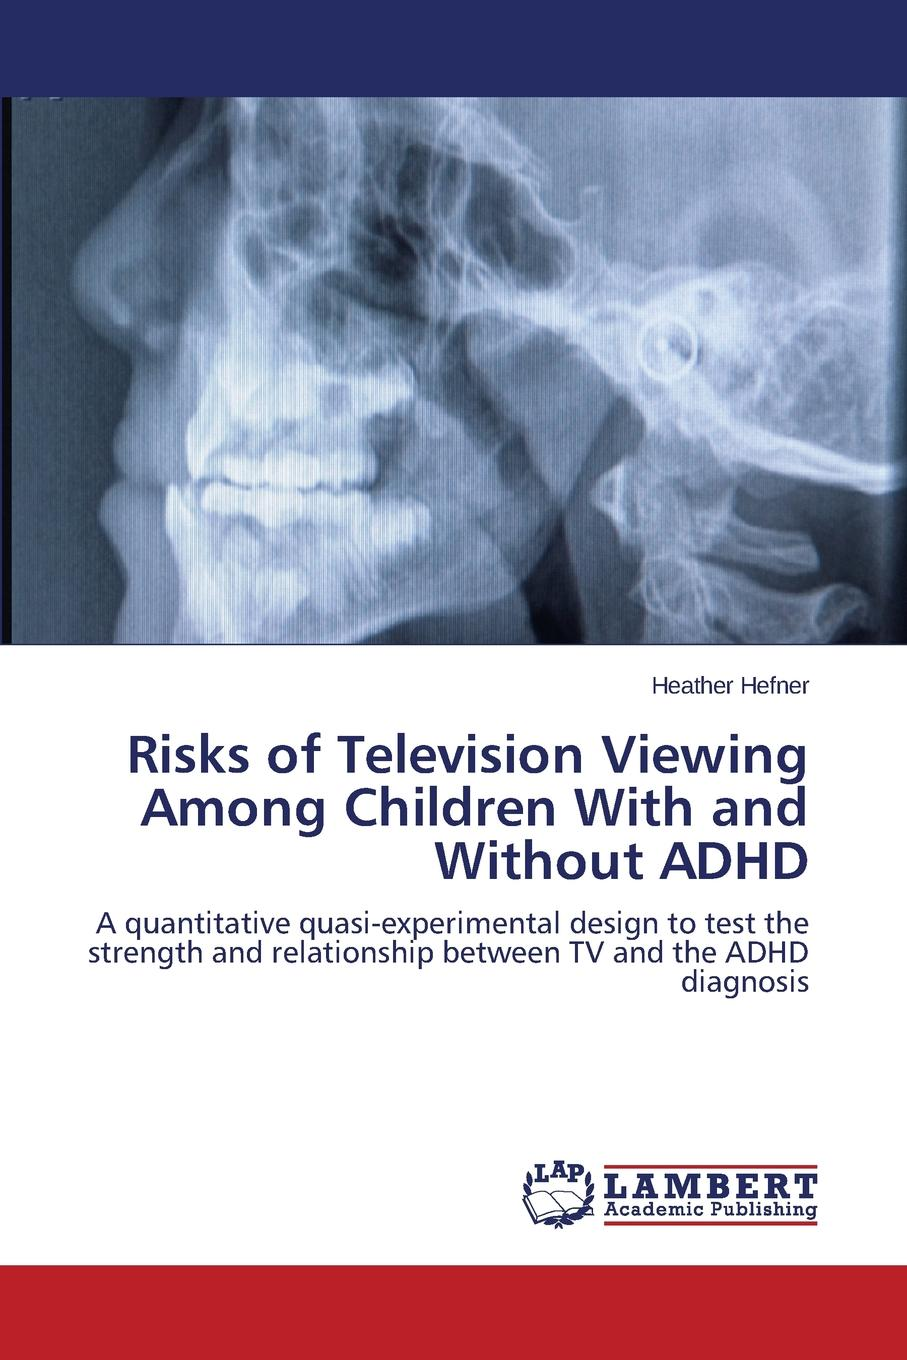 купить Hefner Heather Risks of Television Viewing Among Children with and Without ADHD онлайн